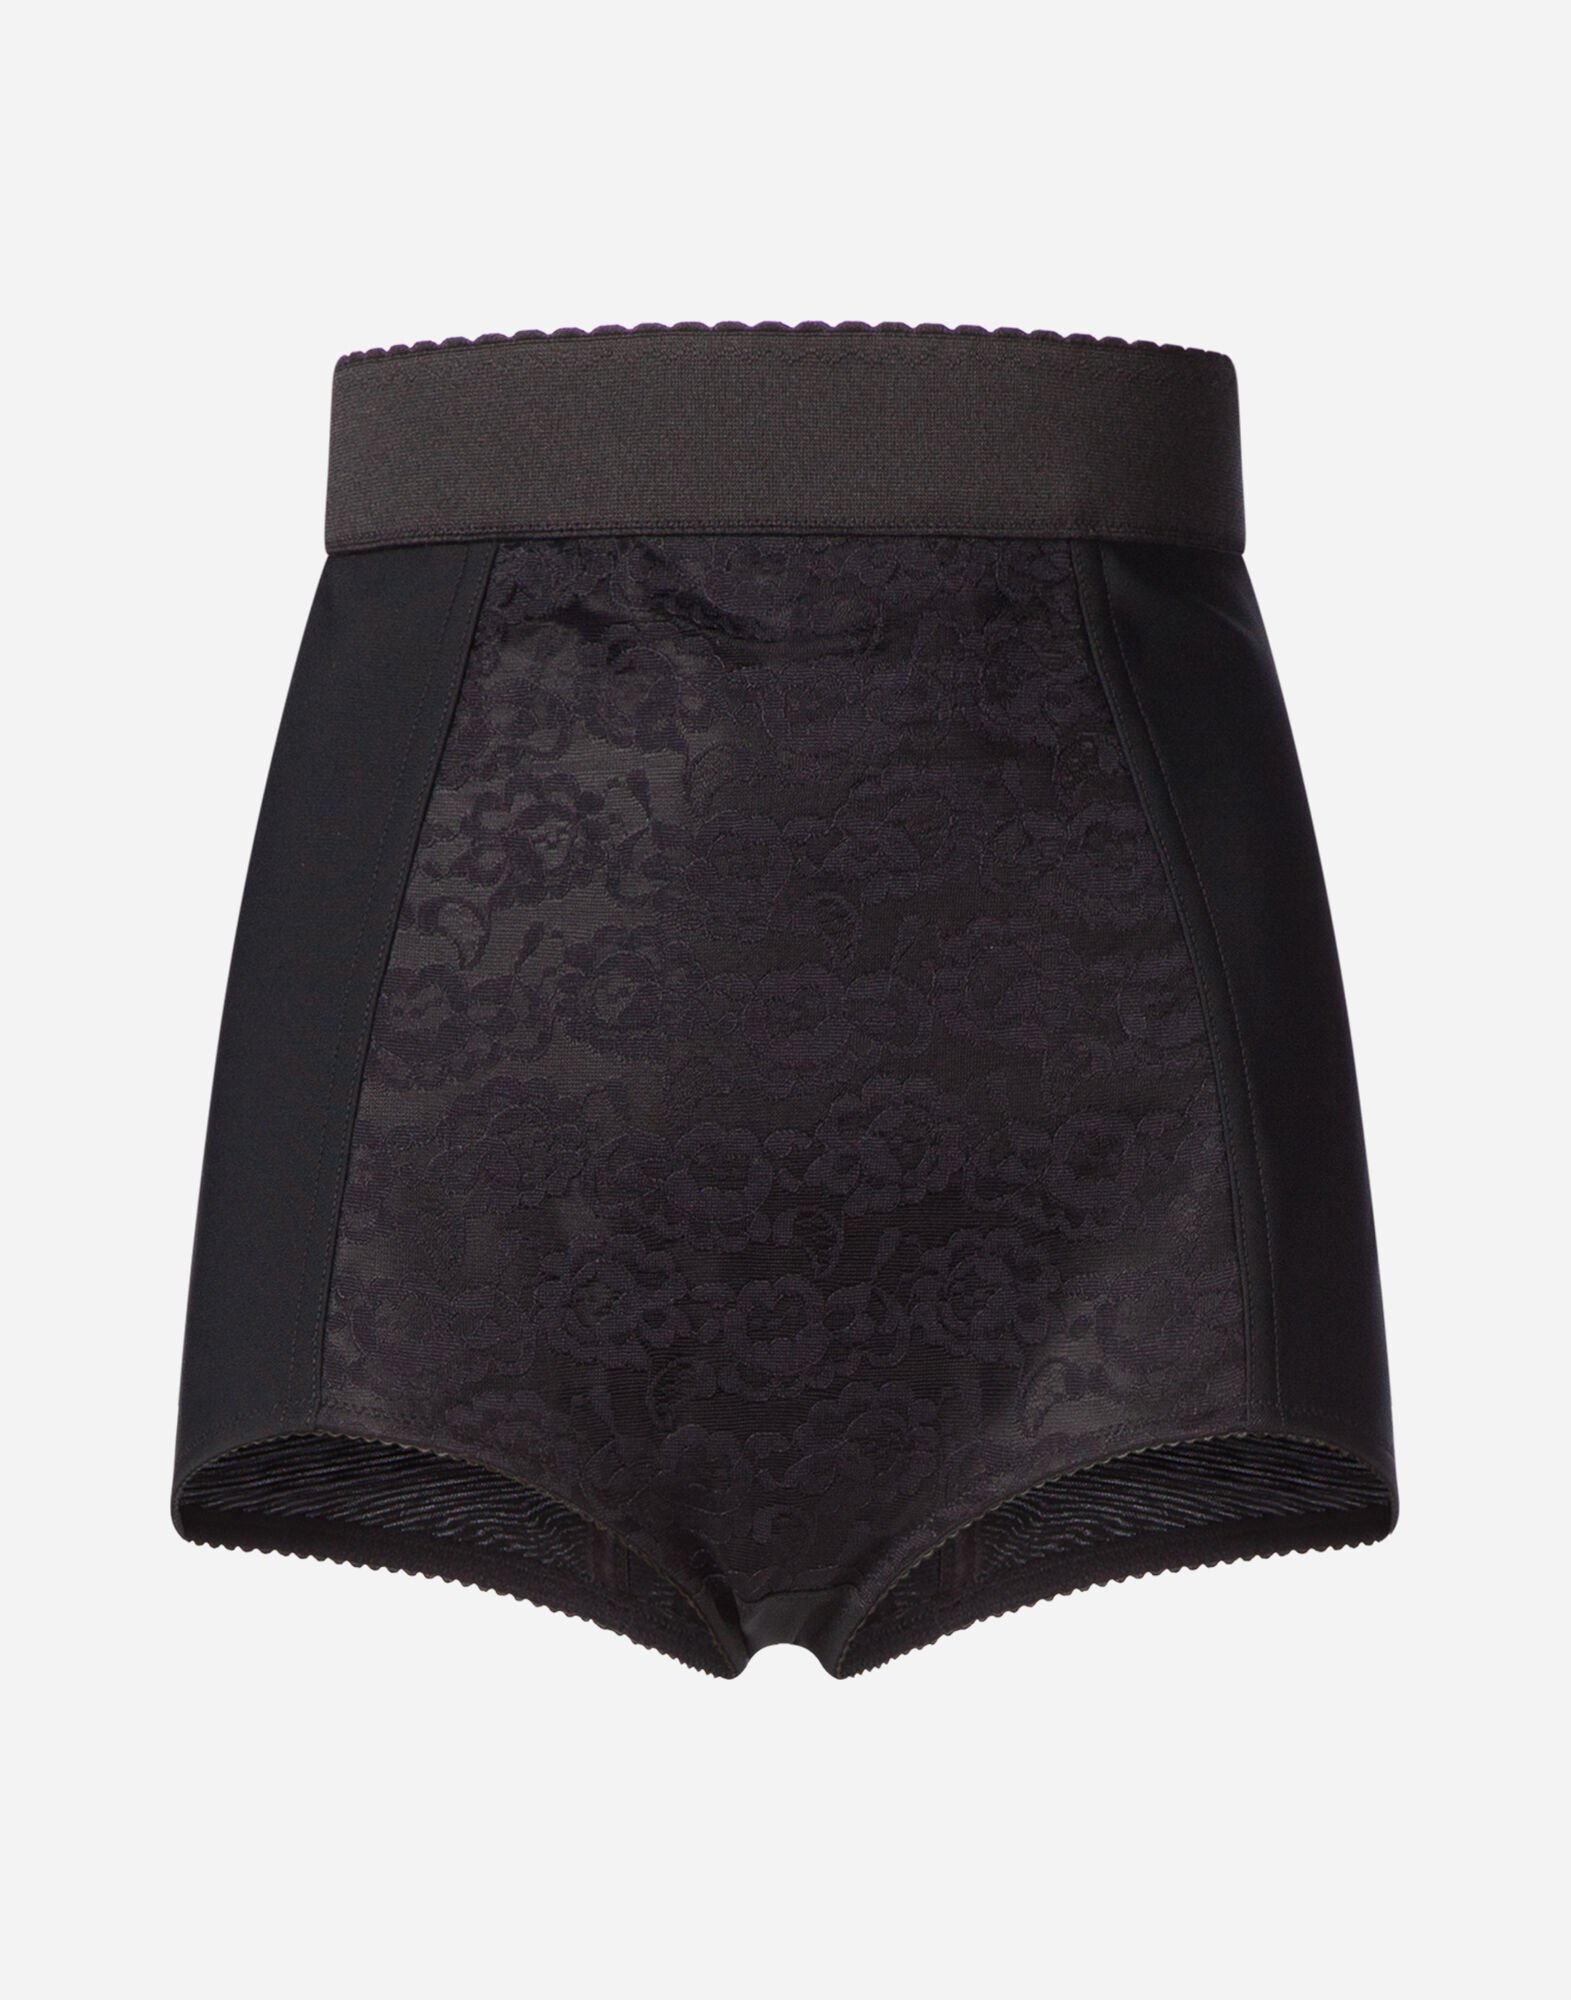 SHAPER PANTIES WITH LACE DETAILS